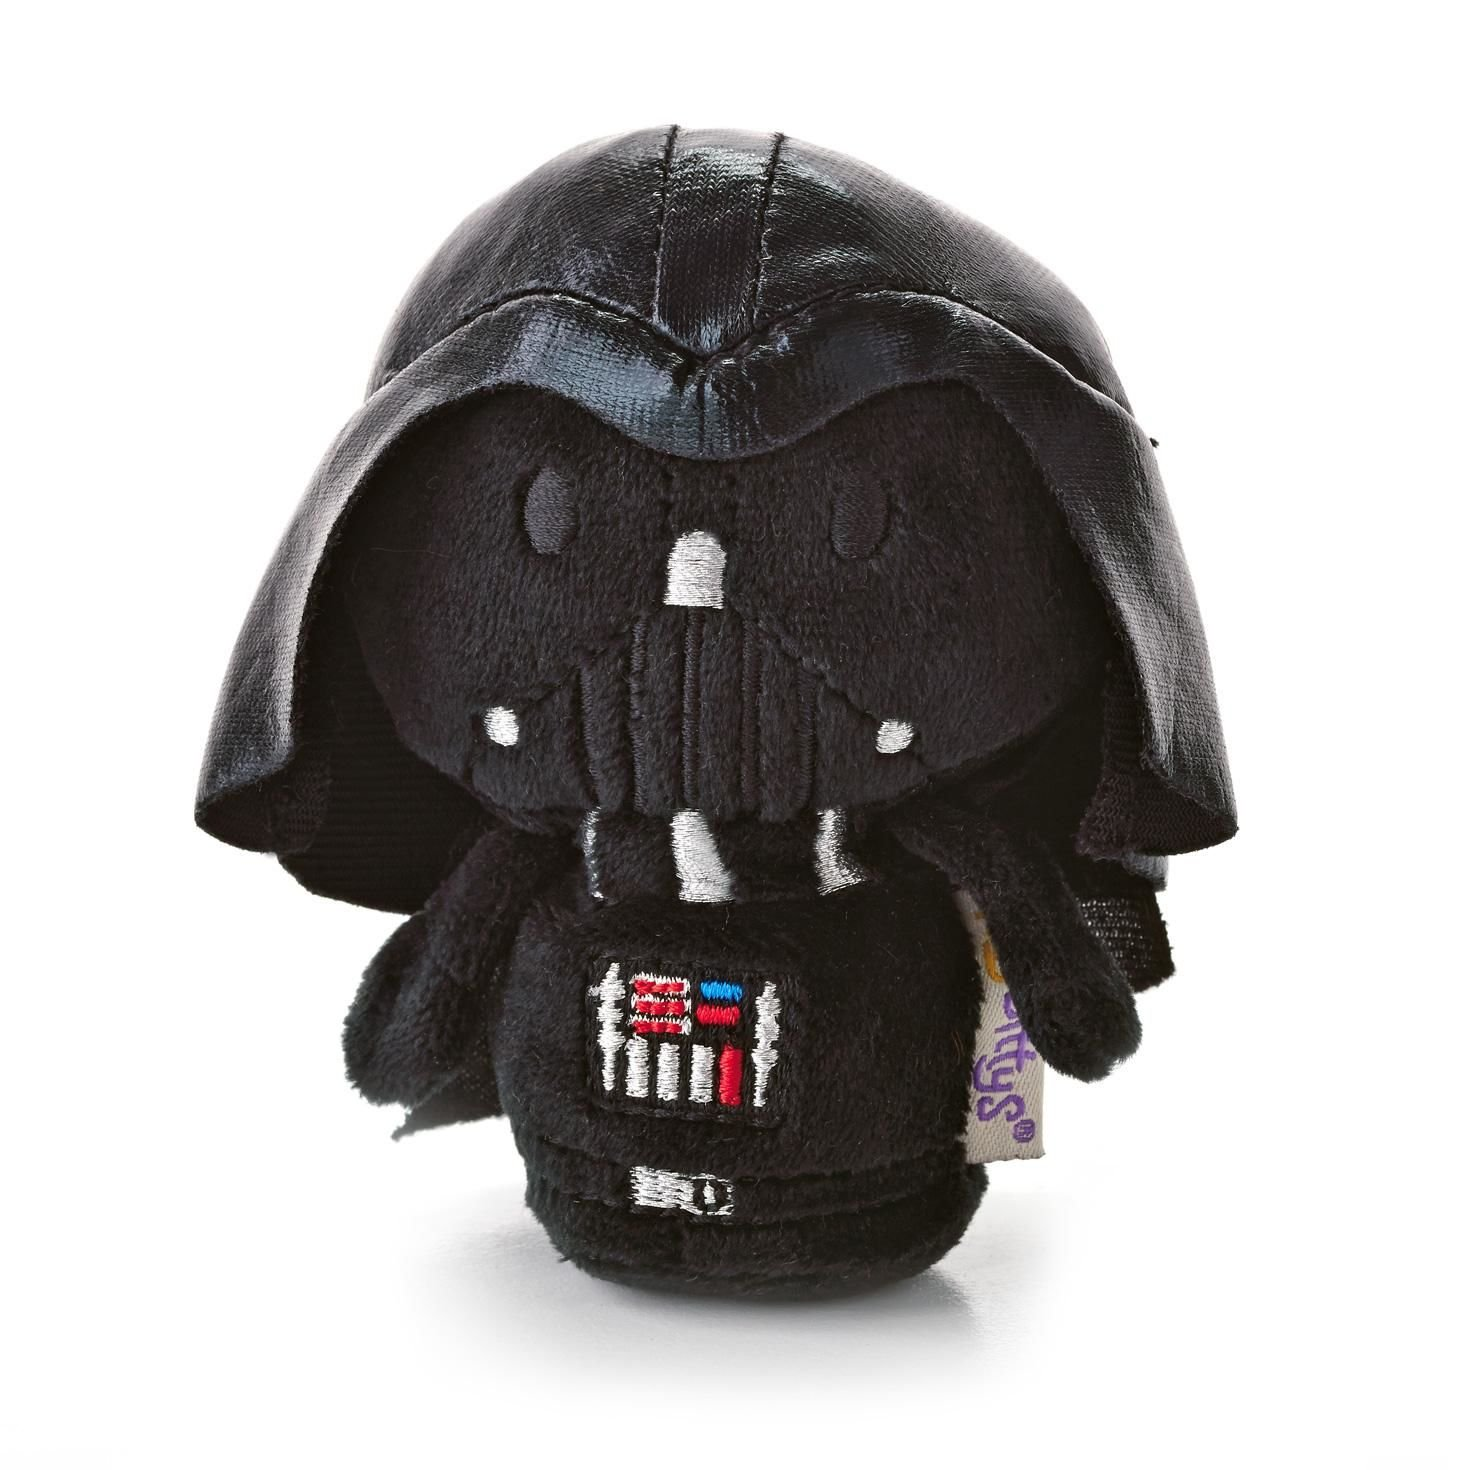 Amazon Com Hallmark Itty Bittys Star Wars Darth Vader Stuffed